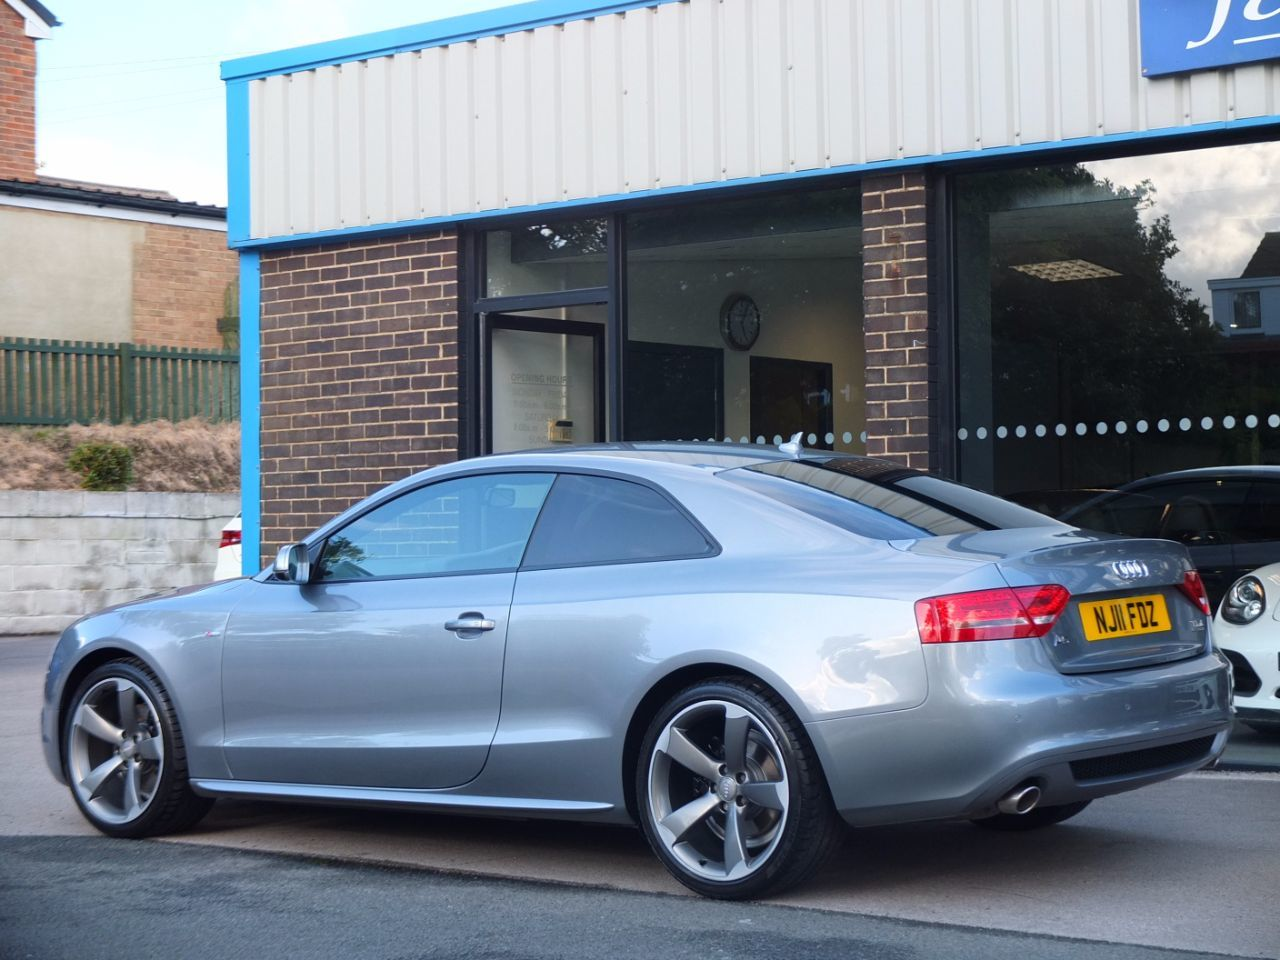 Audi A5 Coupe 3.0 TDI quattro Black Edition S Tronic Coupe Diesel Quartz Grey Metallic